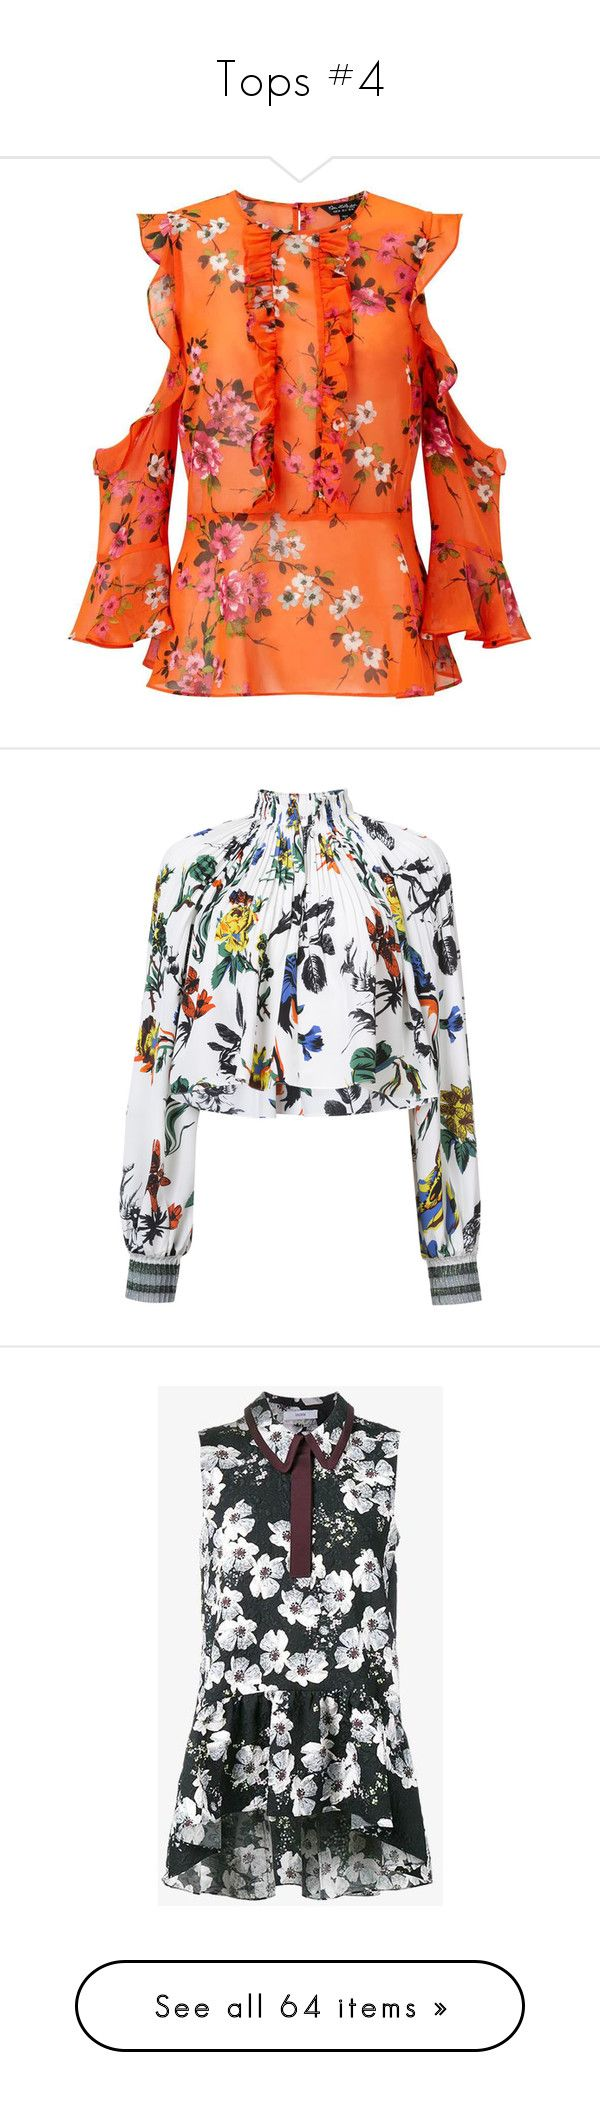 """Tops #4"" by frenchystyle ❤ liked on Polyvore featuring tops, blouses, long sleeve tops, miss selfridge, shirts, orange, cold shoulder shirt, long-sleeve shirt, floral blouse and long sleeve shirts"